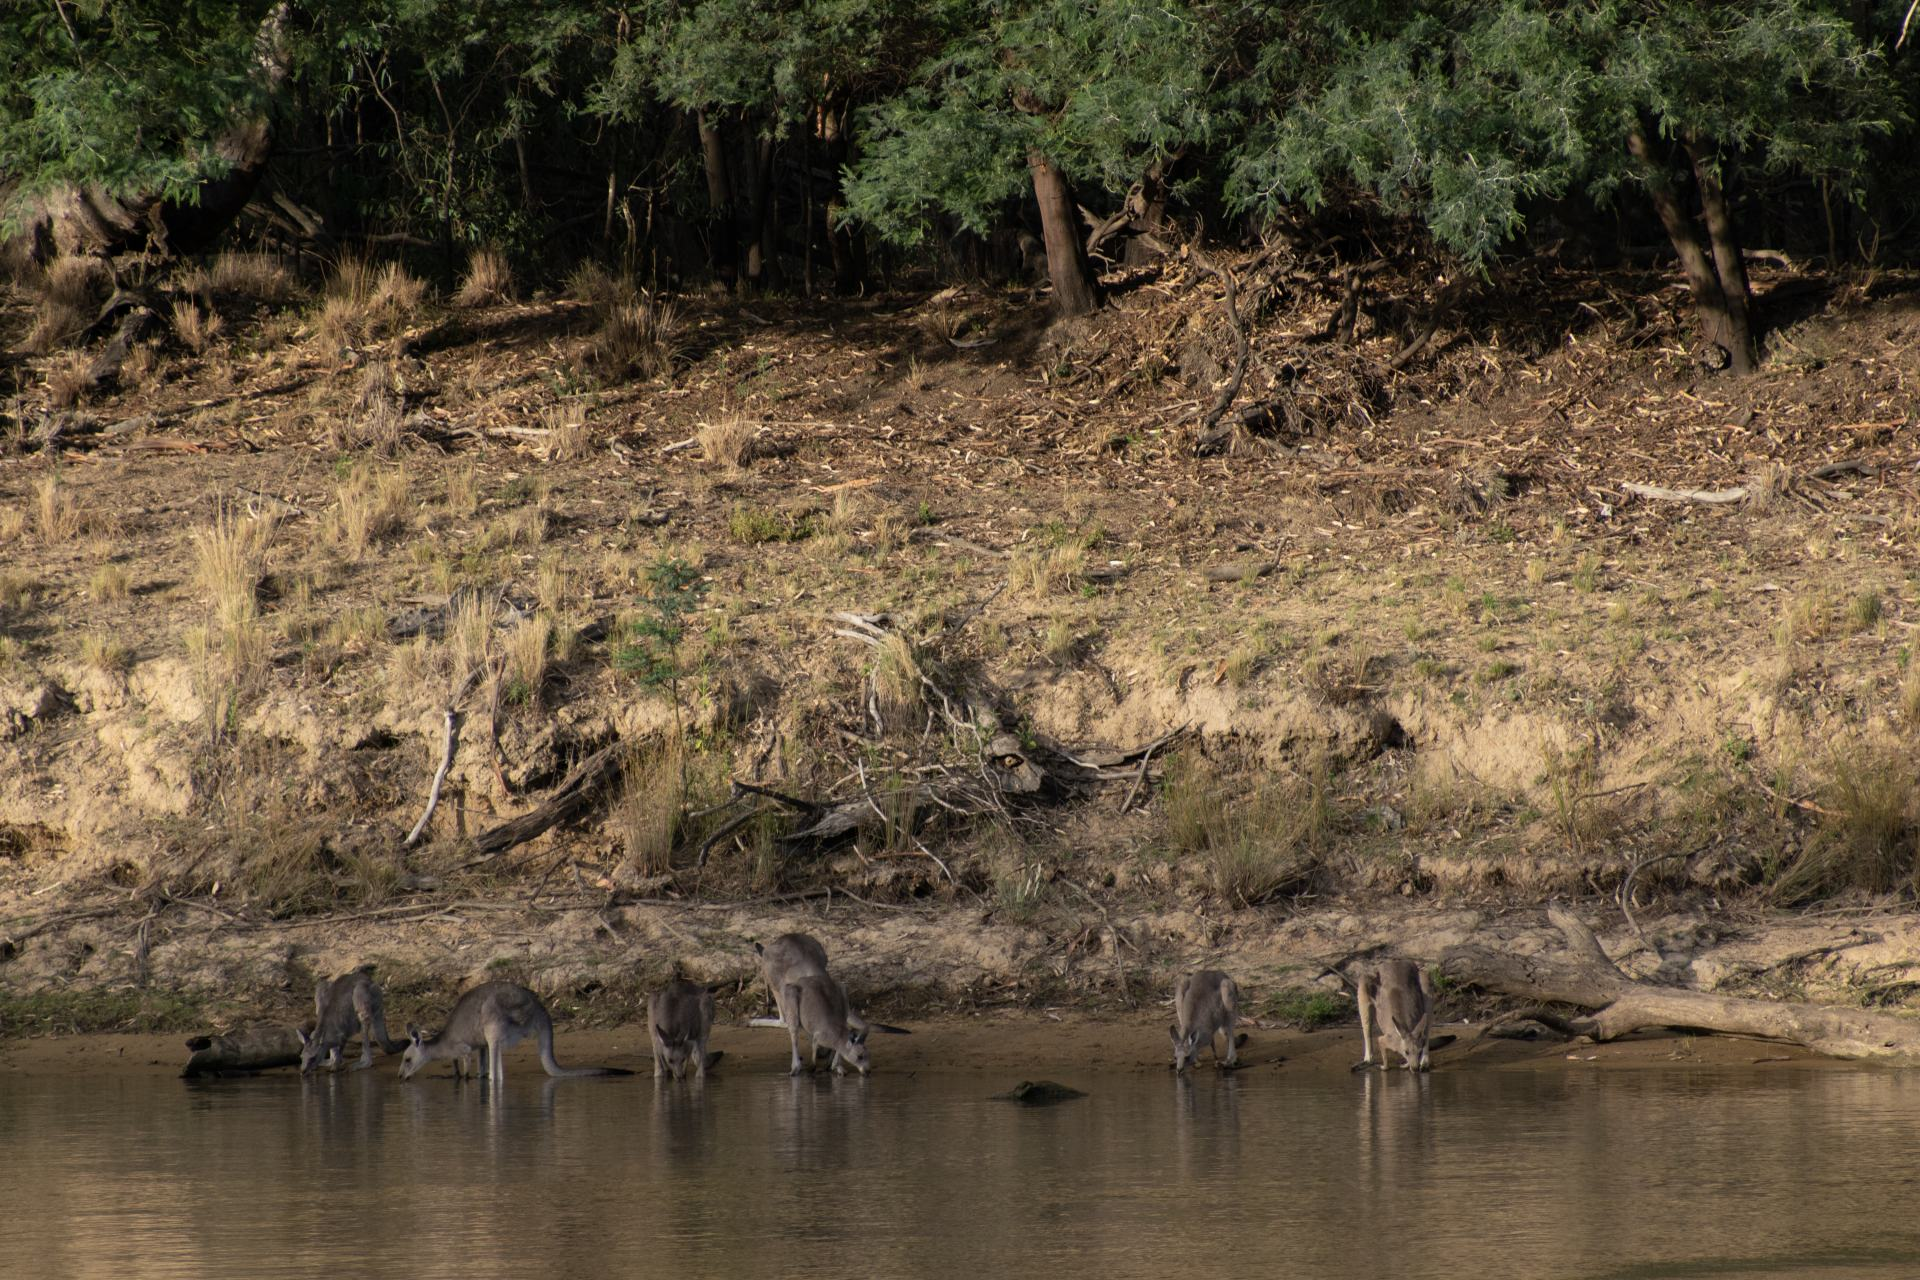 kangaroos coming to the river for a drink